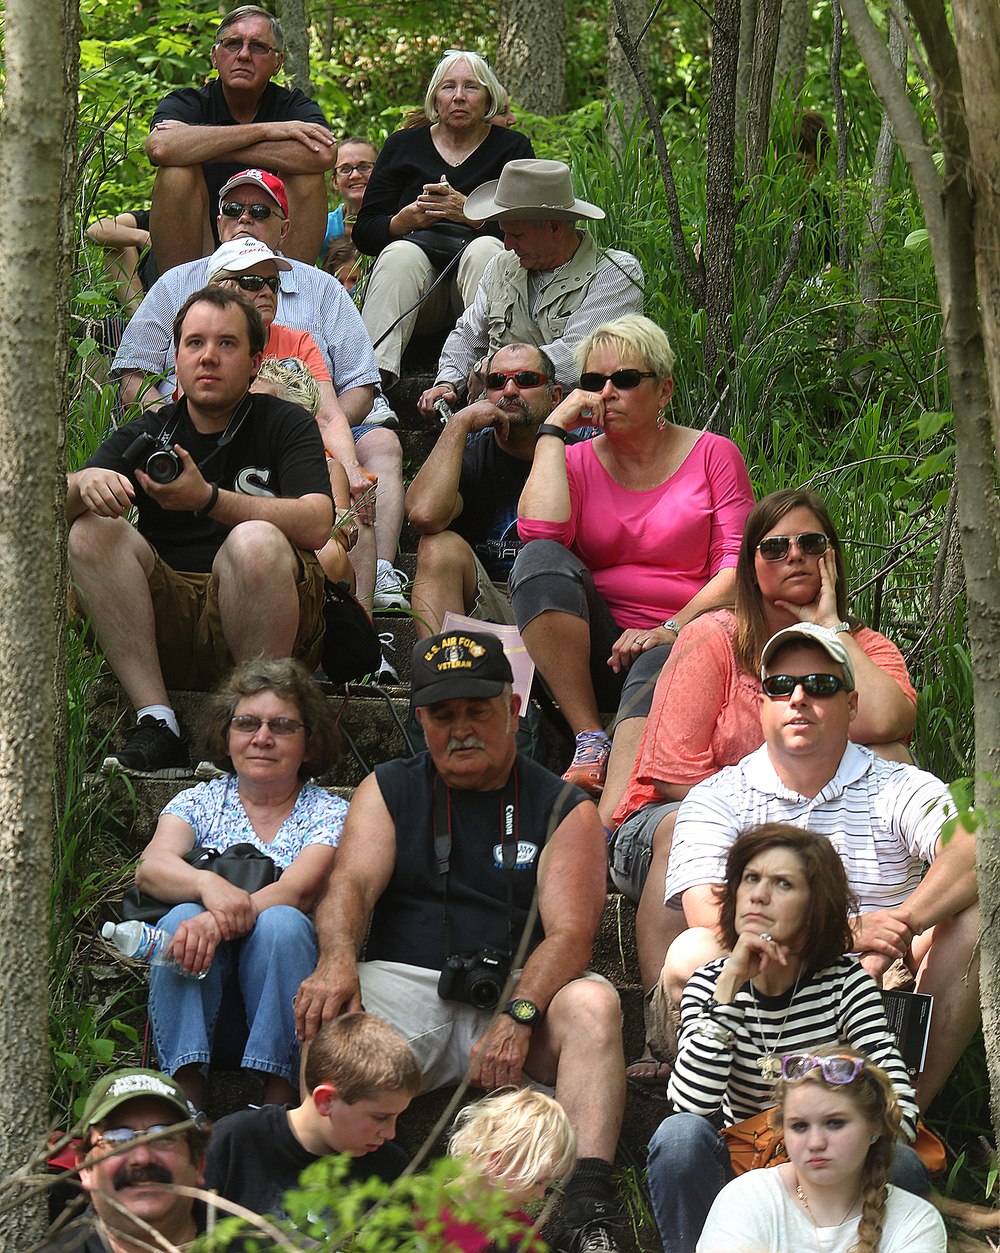 Spectators found shade while seated on steps in a wooded area close to where the ceremony was taking place across from the old Lincoln receiving vault on the grounds of Oak Ridge Cemetery Sunday afternoon. David Spencer/The State Journal-Register